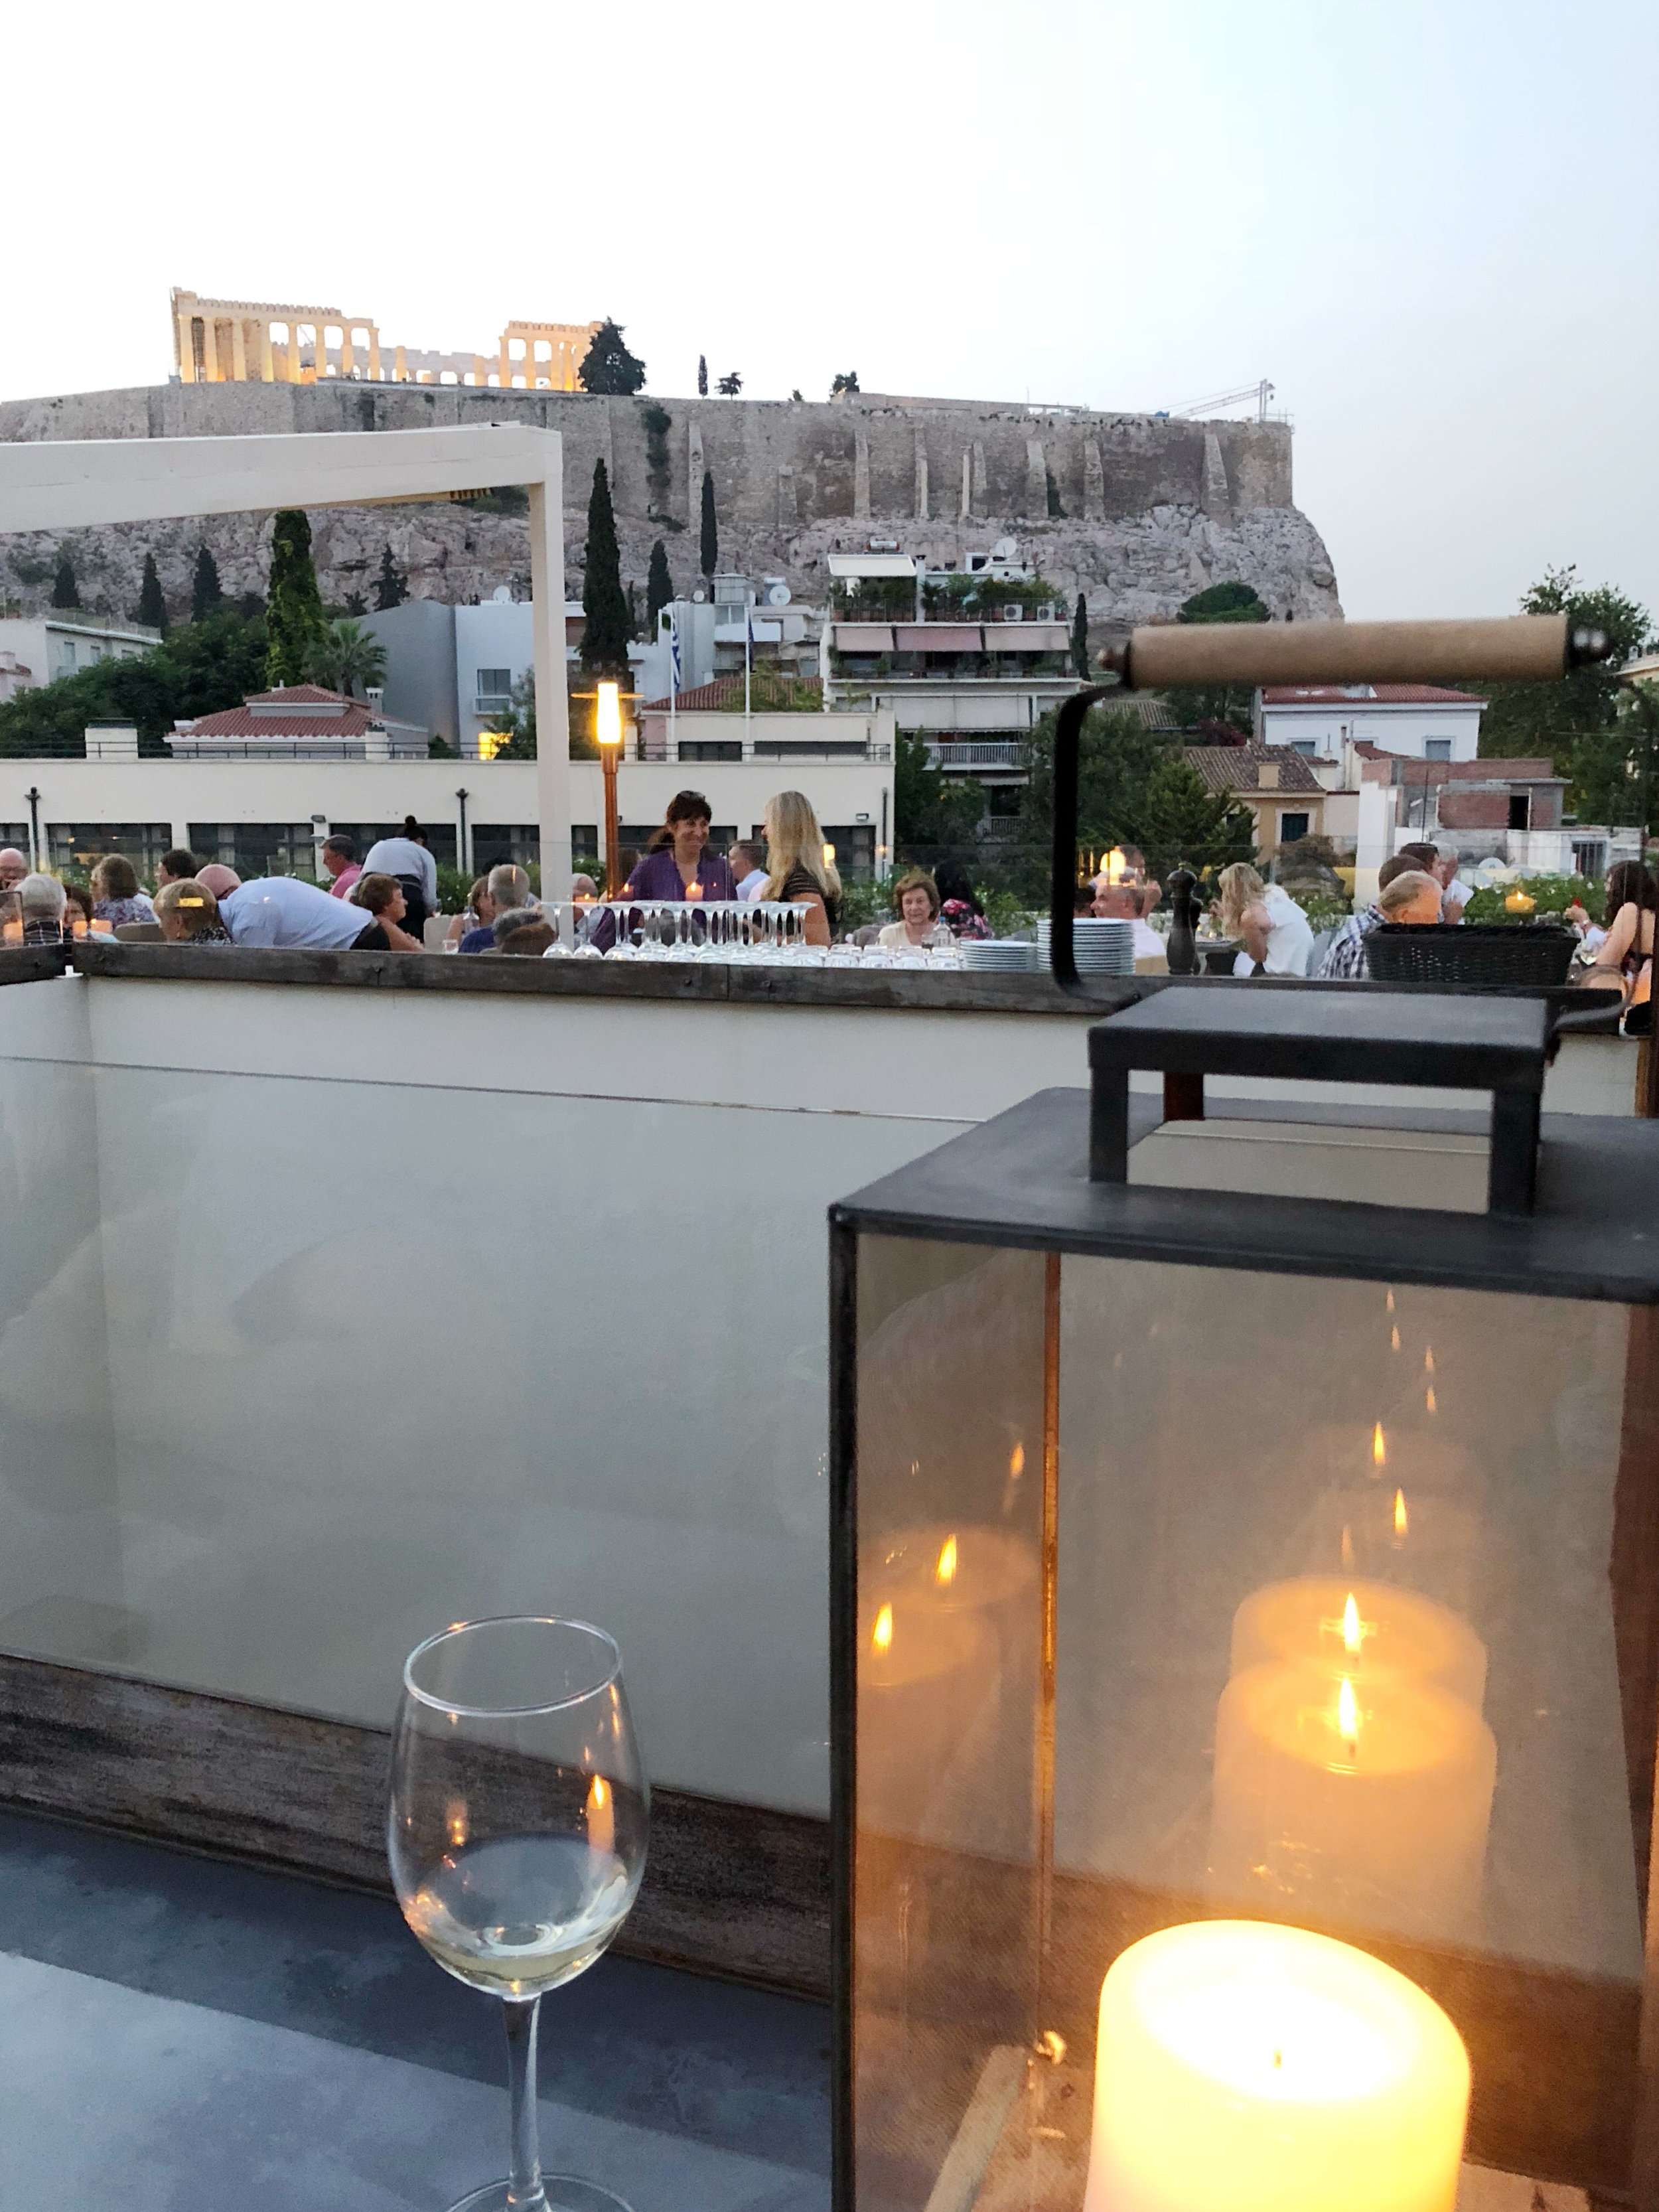 The Acropolis lit up at night - view from Herodion Hotel